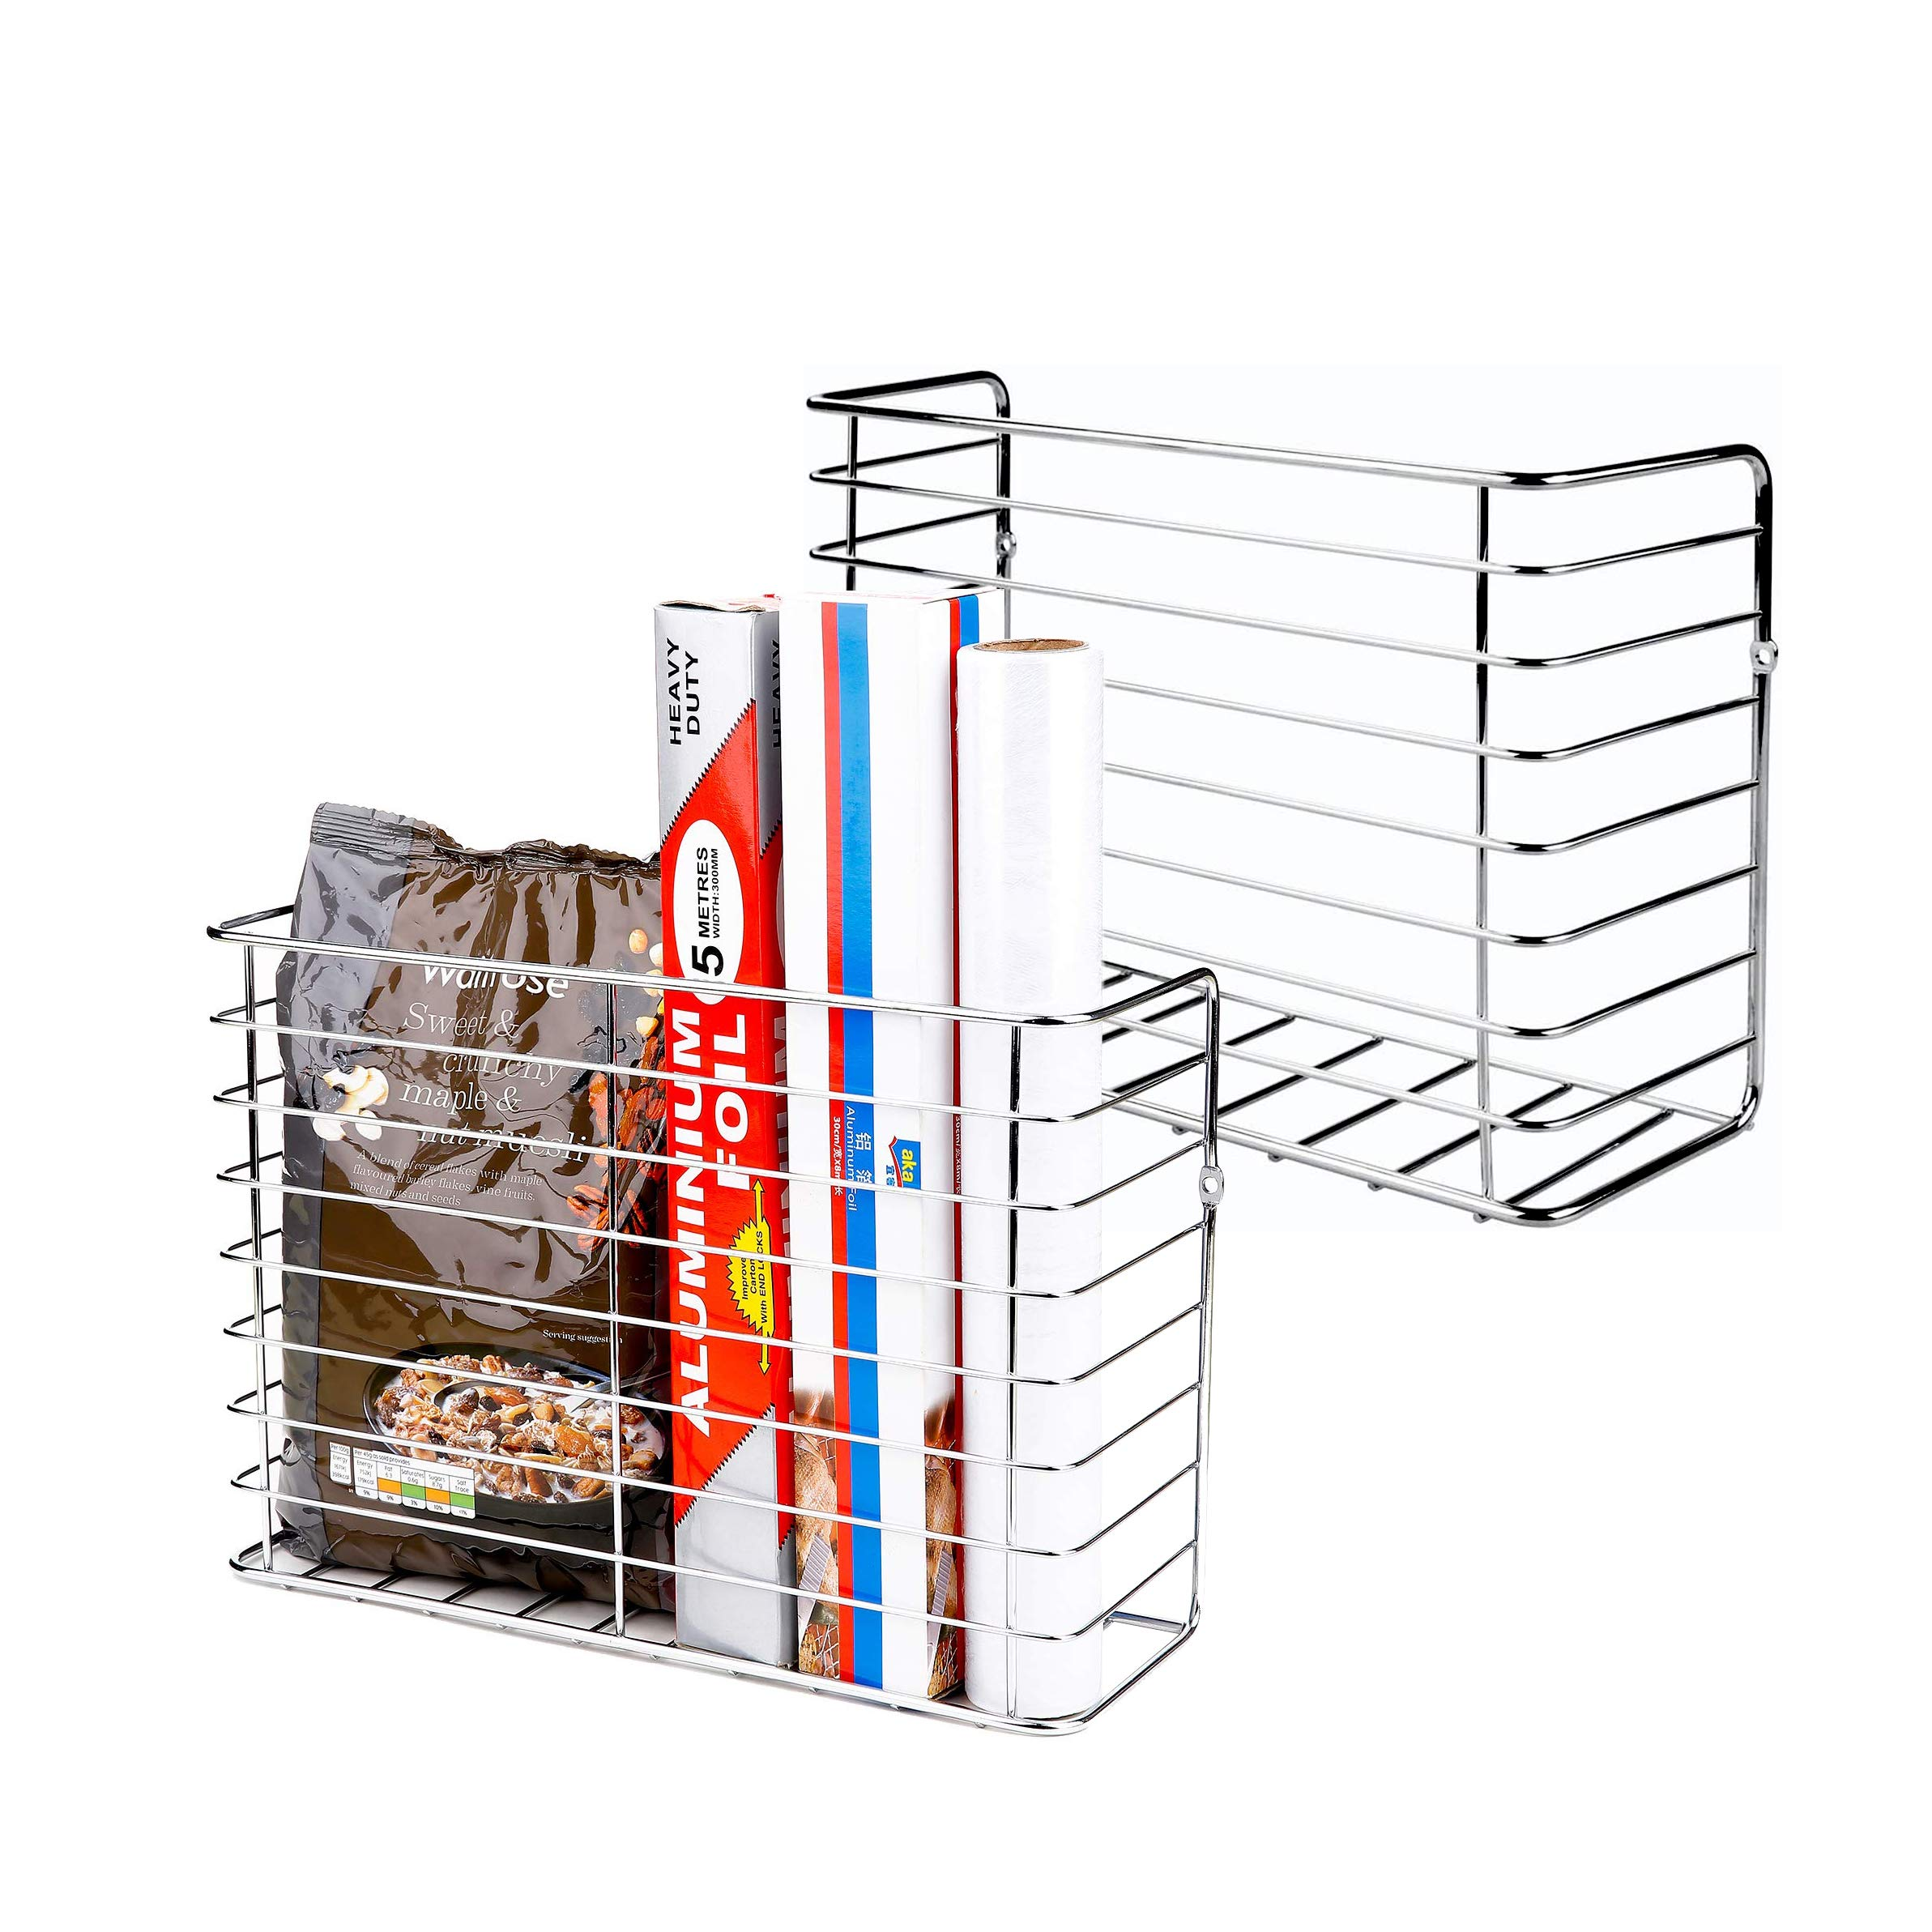 2 Pack Wall Door Mount Kitchen Wrap Organizer Rack Cabinet Door Pantry Door Wall Mount Kitchen Storage Organizer Basket Amazon In Home Kitchen